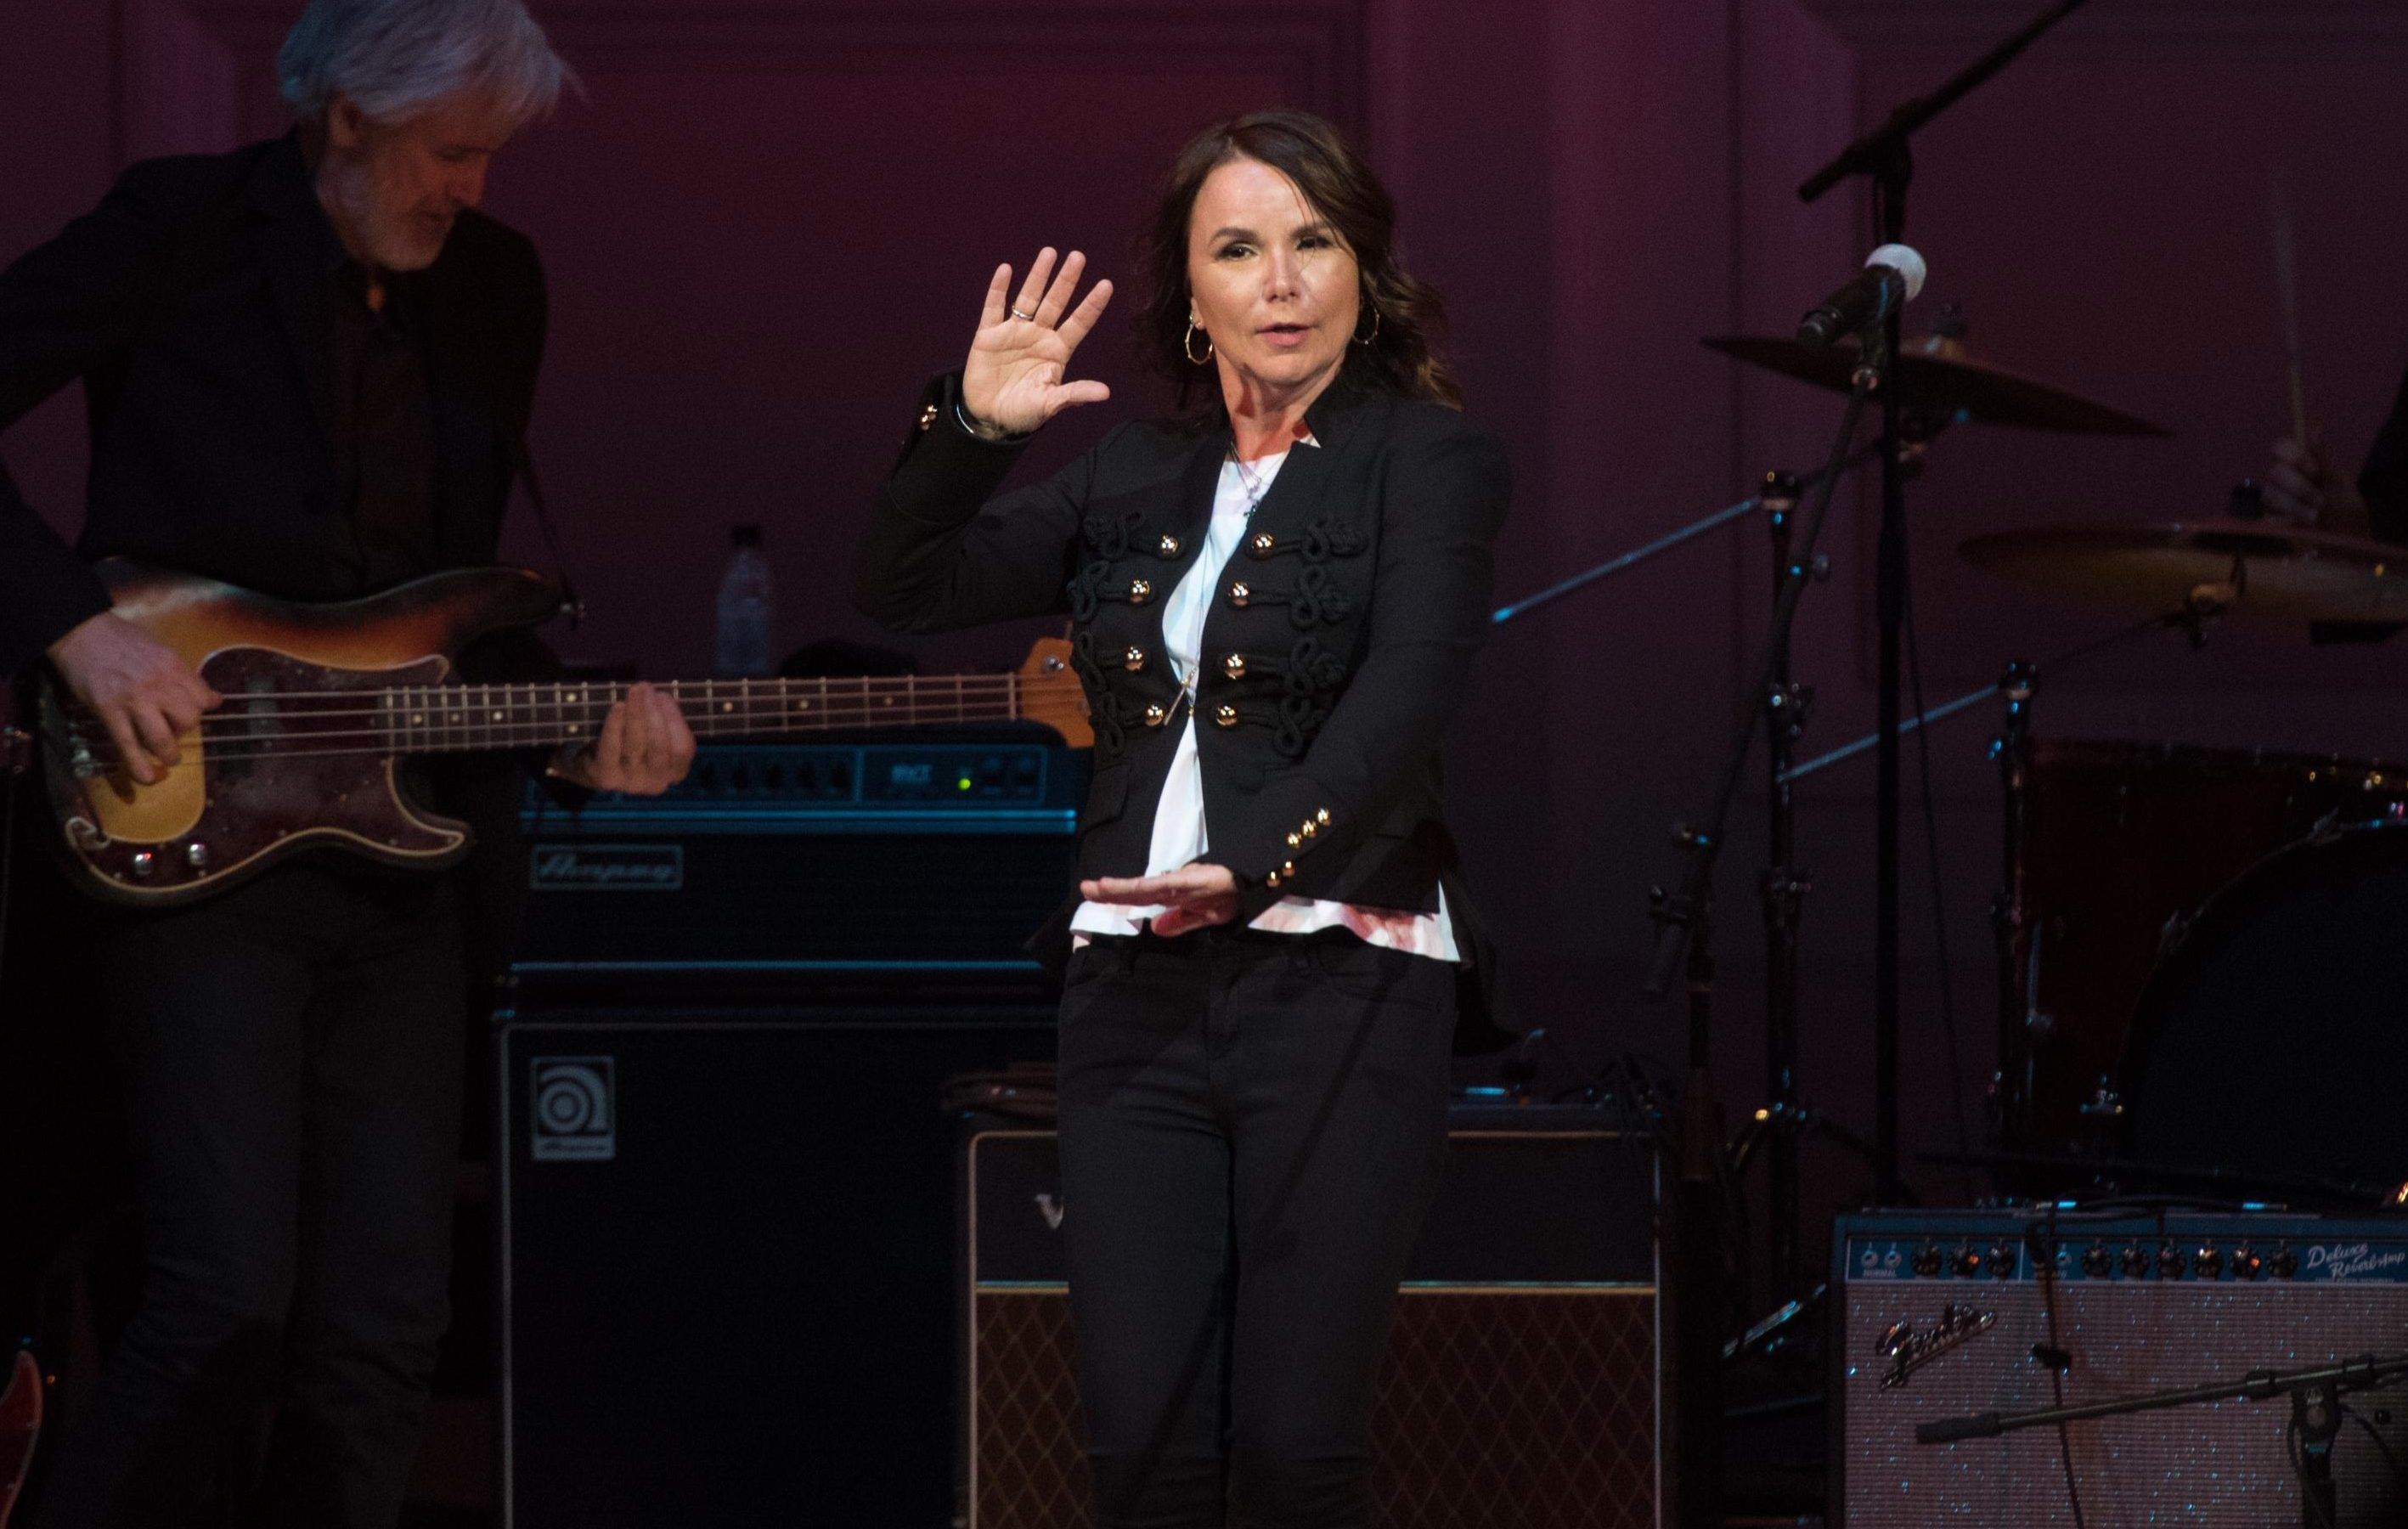 Patty Smyth, John McEnroe's second wife